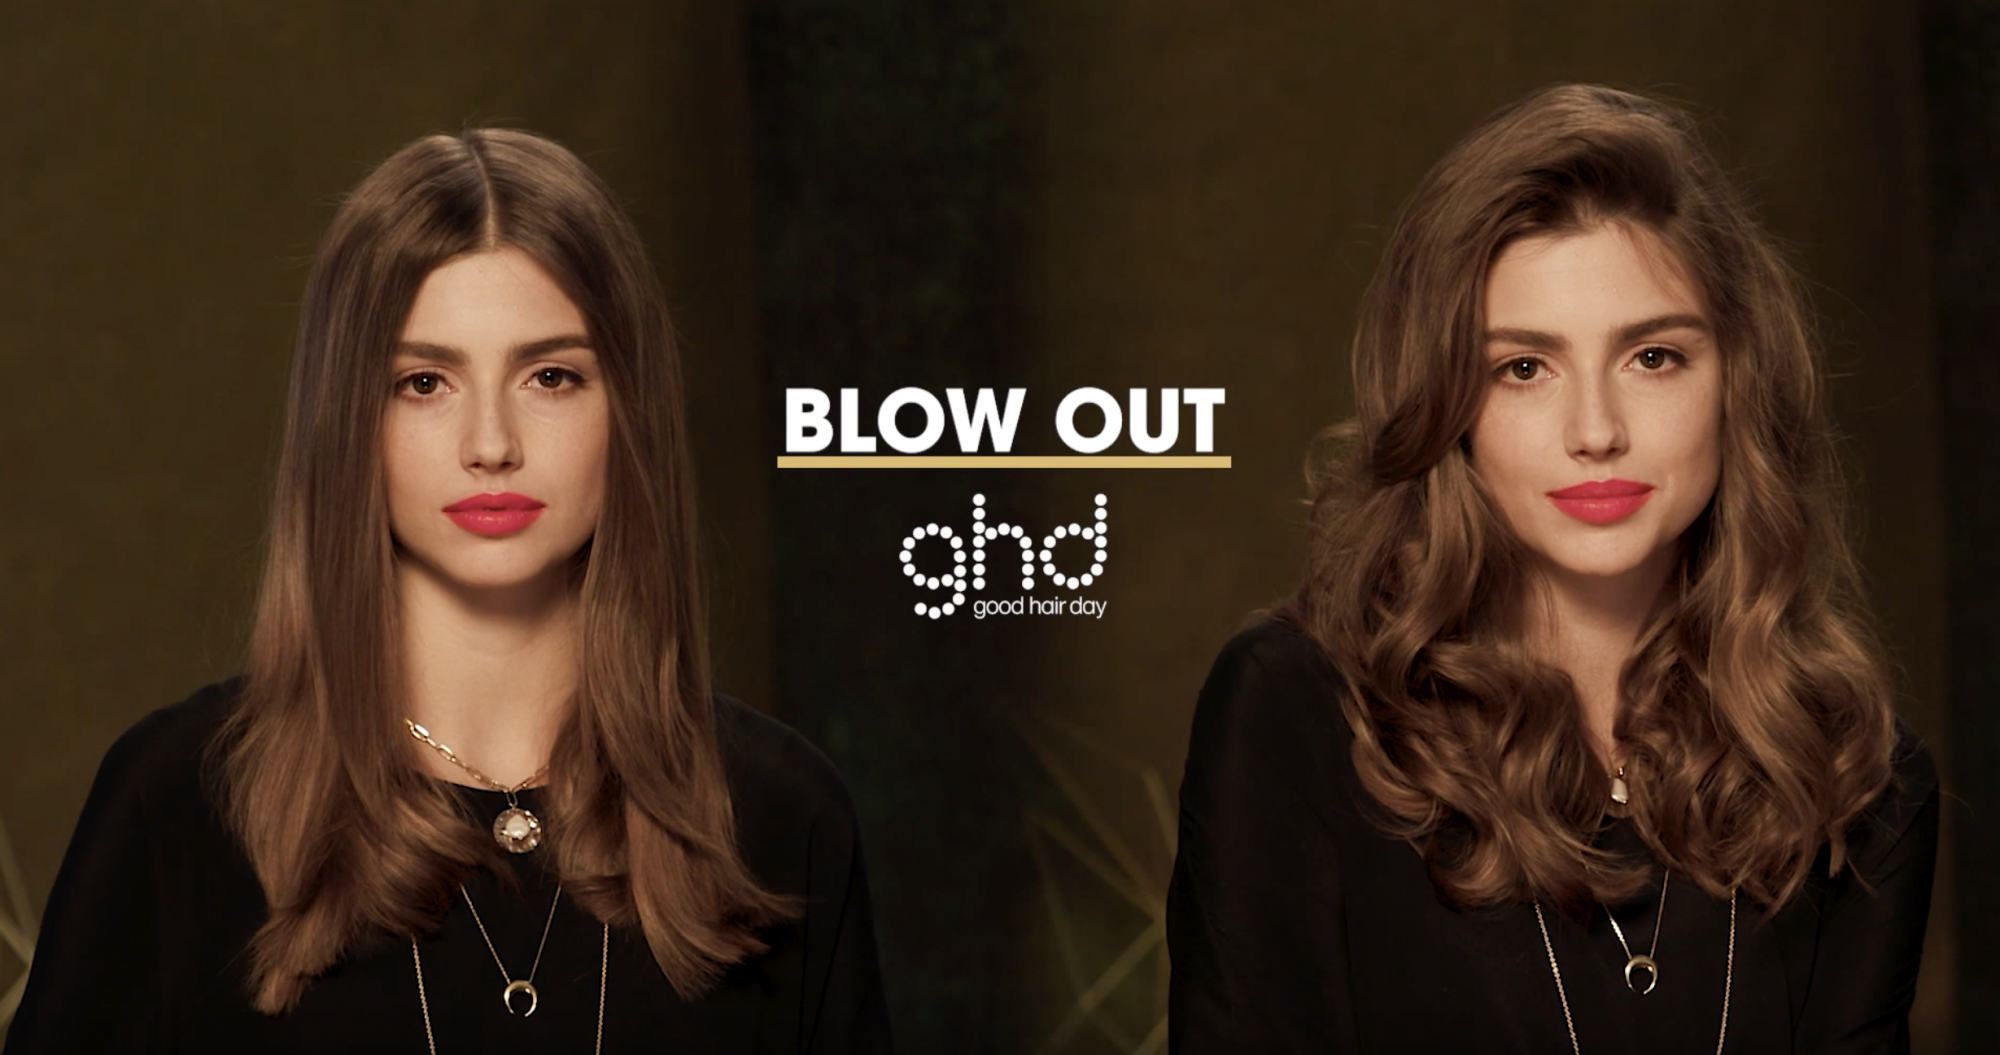 ghd Oracle Curler Before After Blow Out Faux-Blow Model 2019